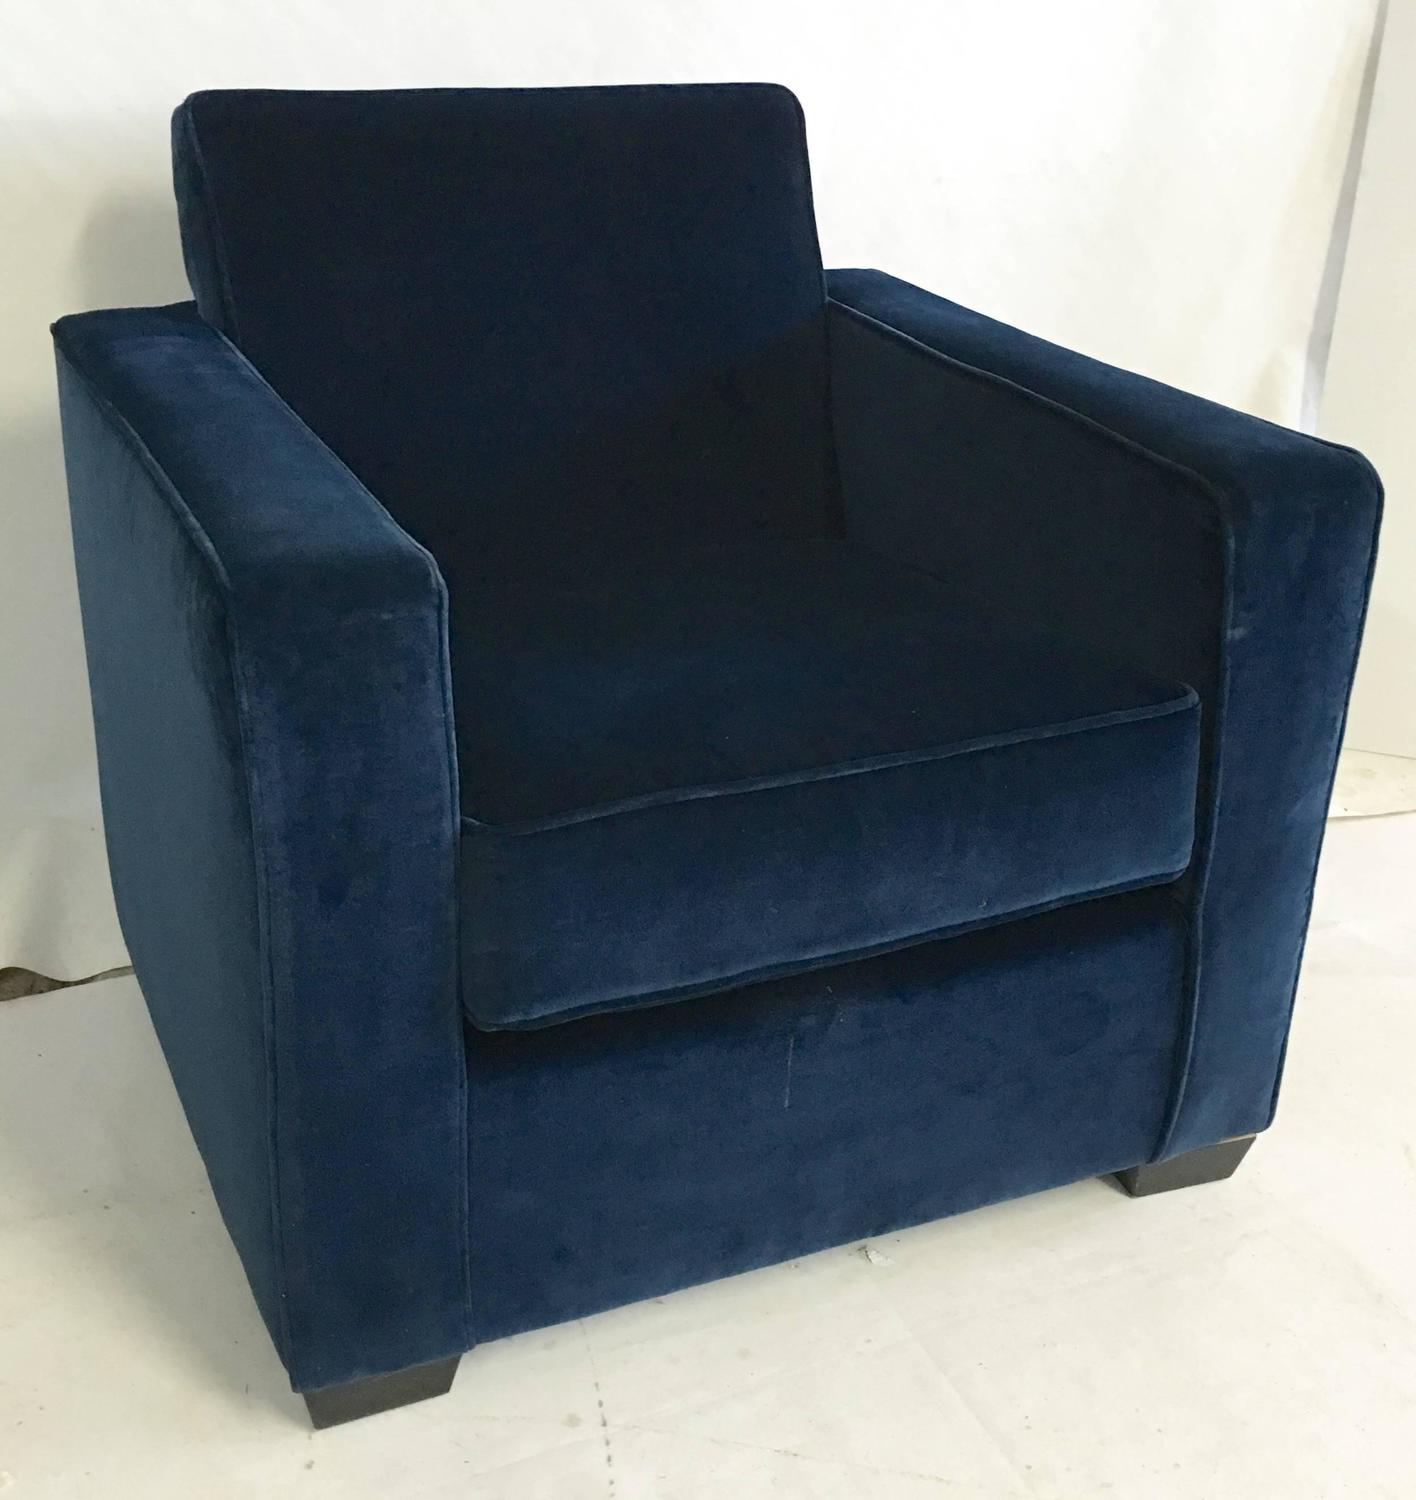 Velvet Club Chair Ralph Lauren Art Deco Style Blue Velvet Club Chair For